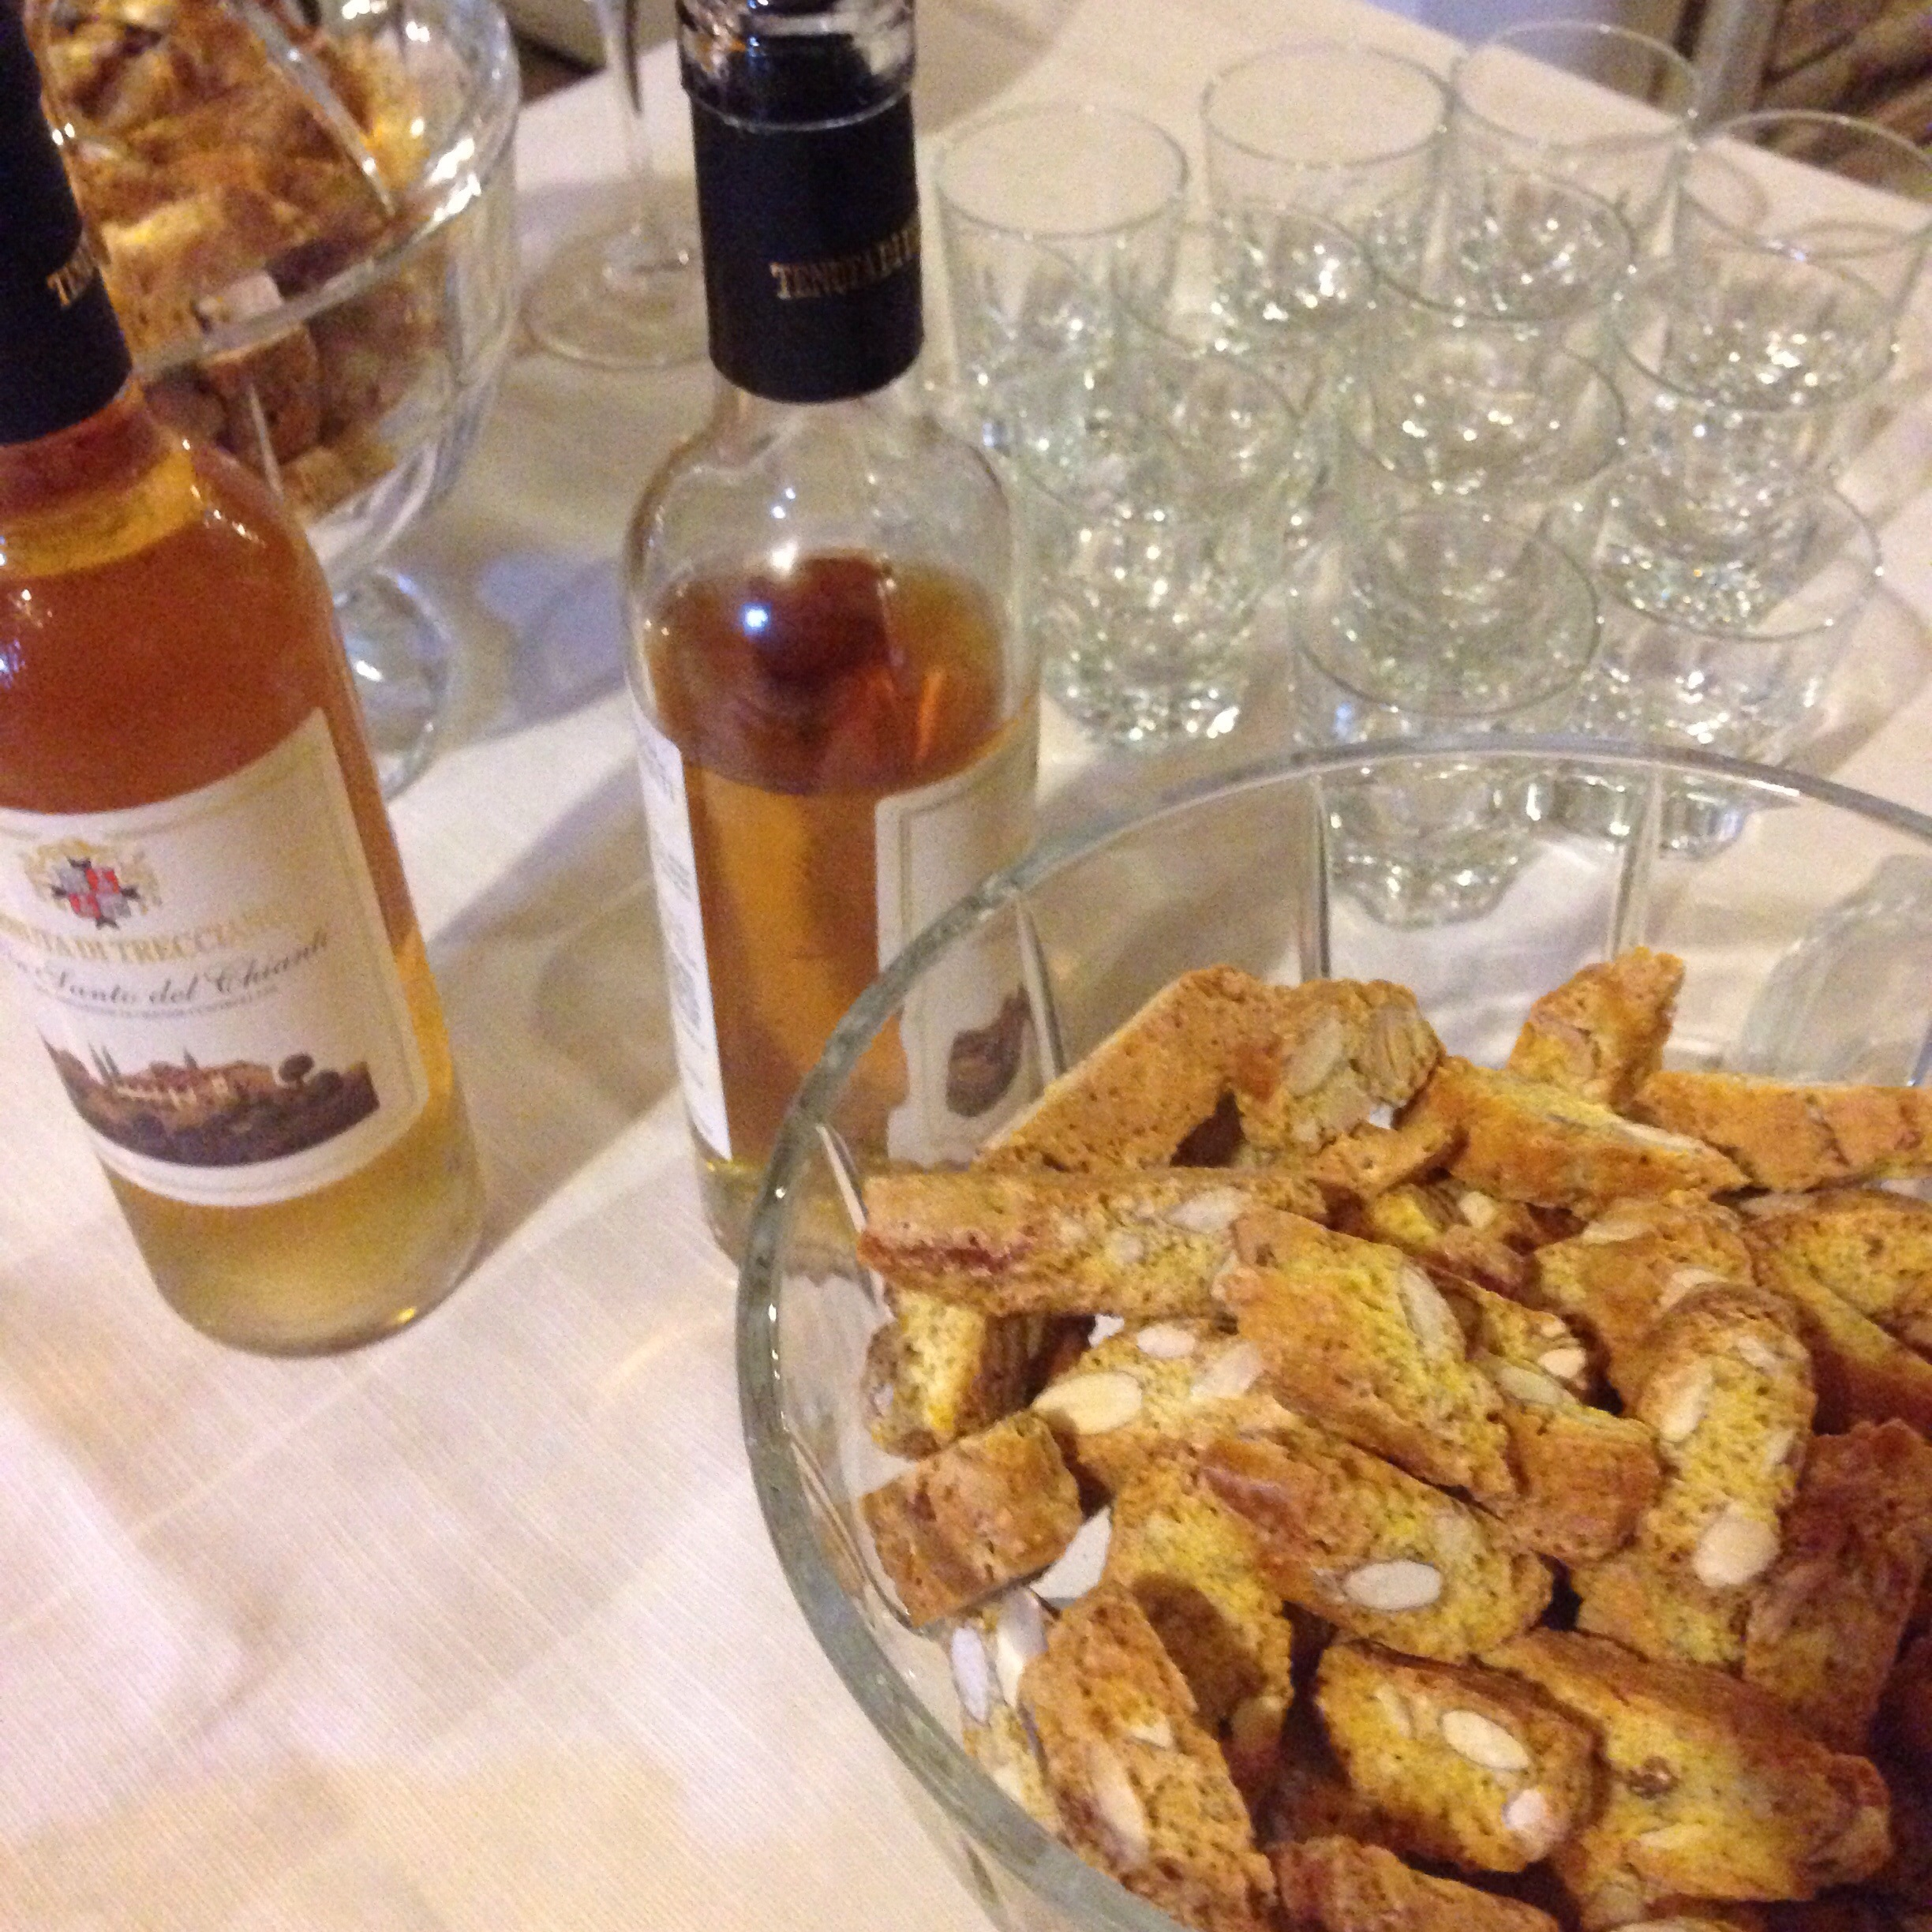 Classic Tuscan 'vinsanto' sweet wine with cantucci biscotti